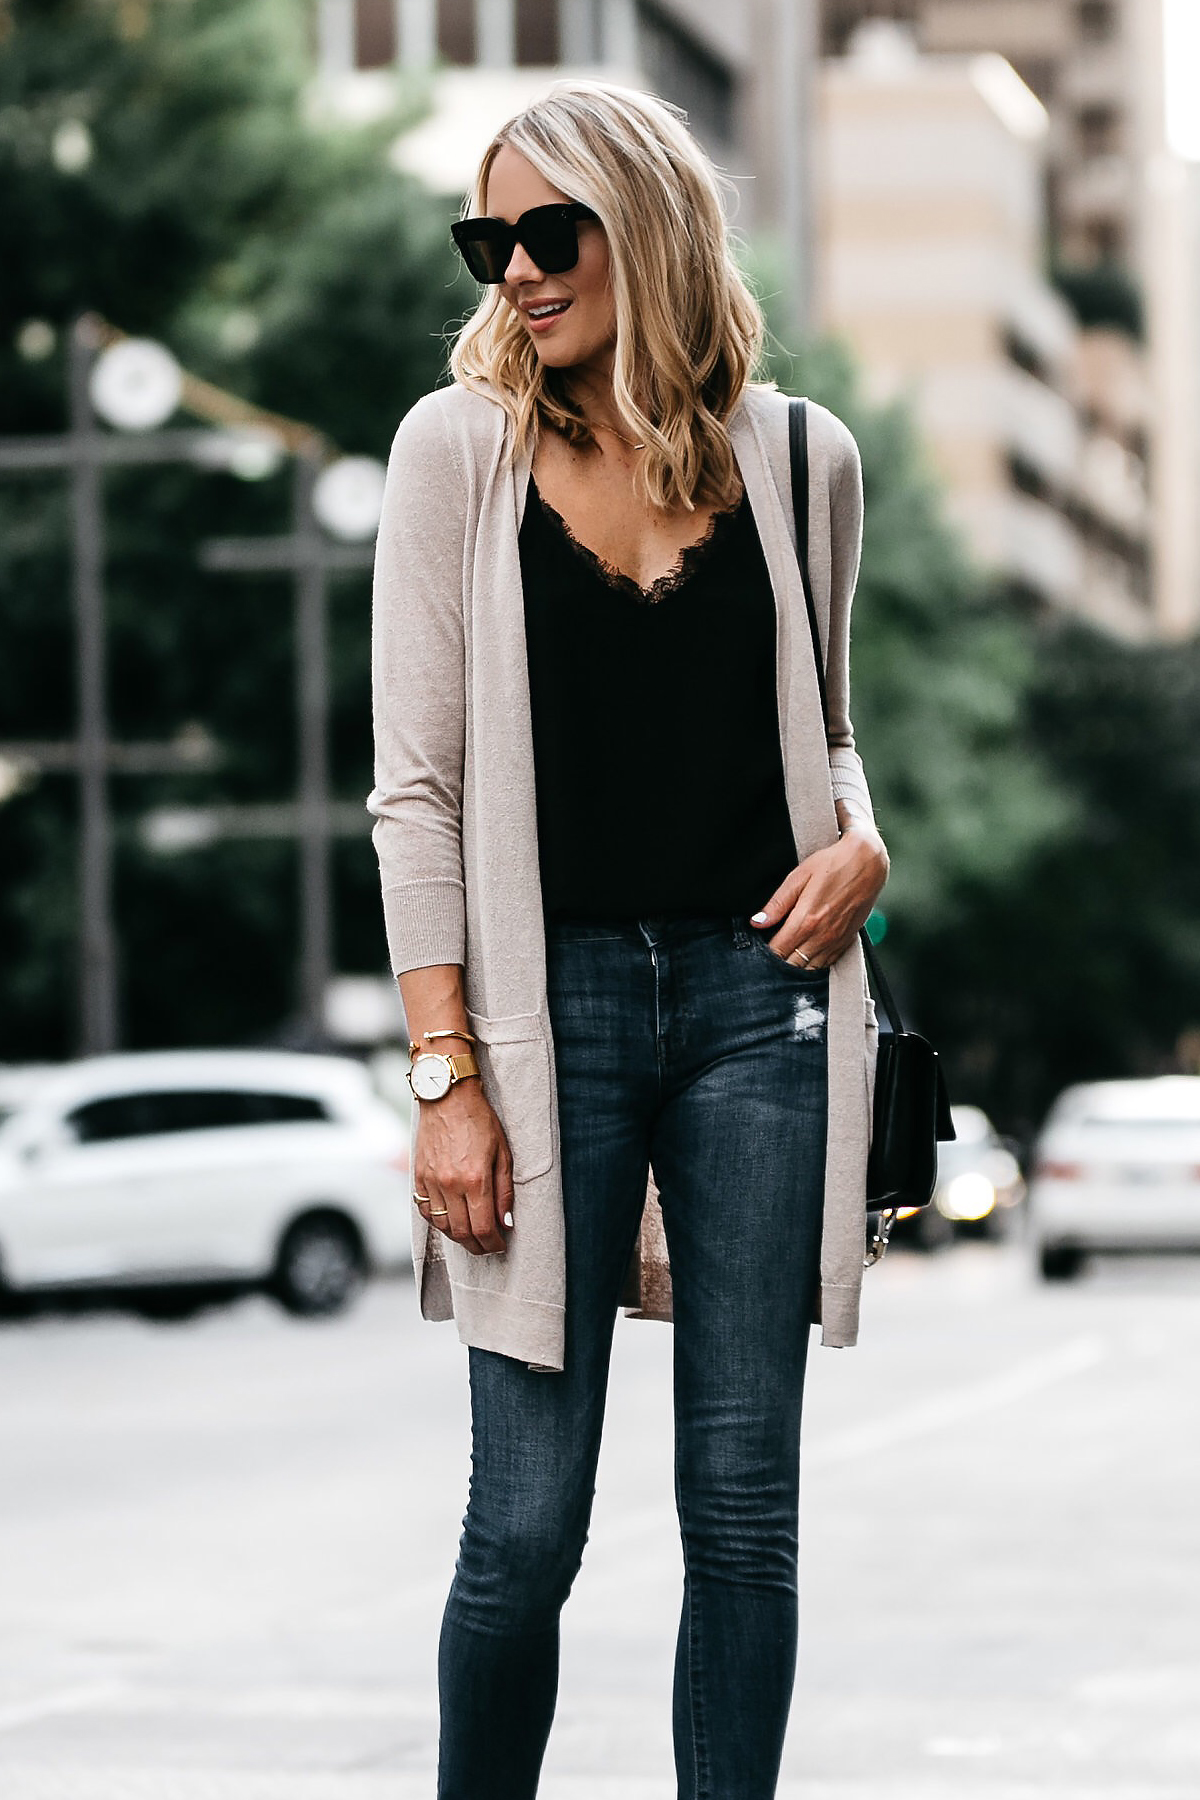 Blonde Woman Wearing Long Tan Cardigan Black Lace Cami Denim Skinny Jeans Outfit Fashion Jackson Dallas Blogger Fashion Blogger